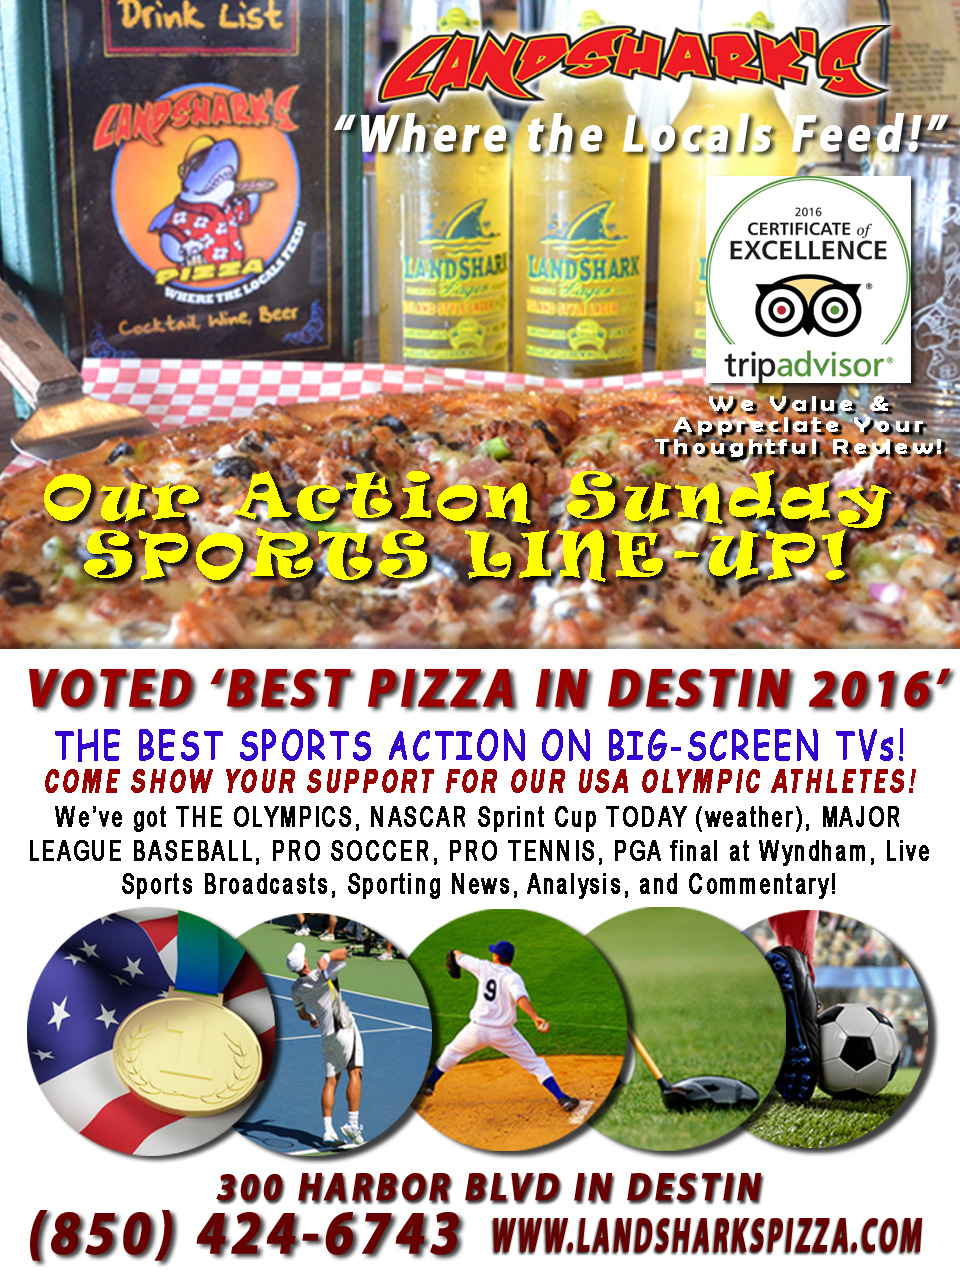 Sports TV Destin FL Sports Bar Landsharks Pizza Company